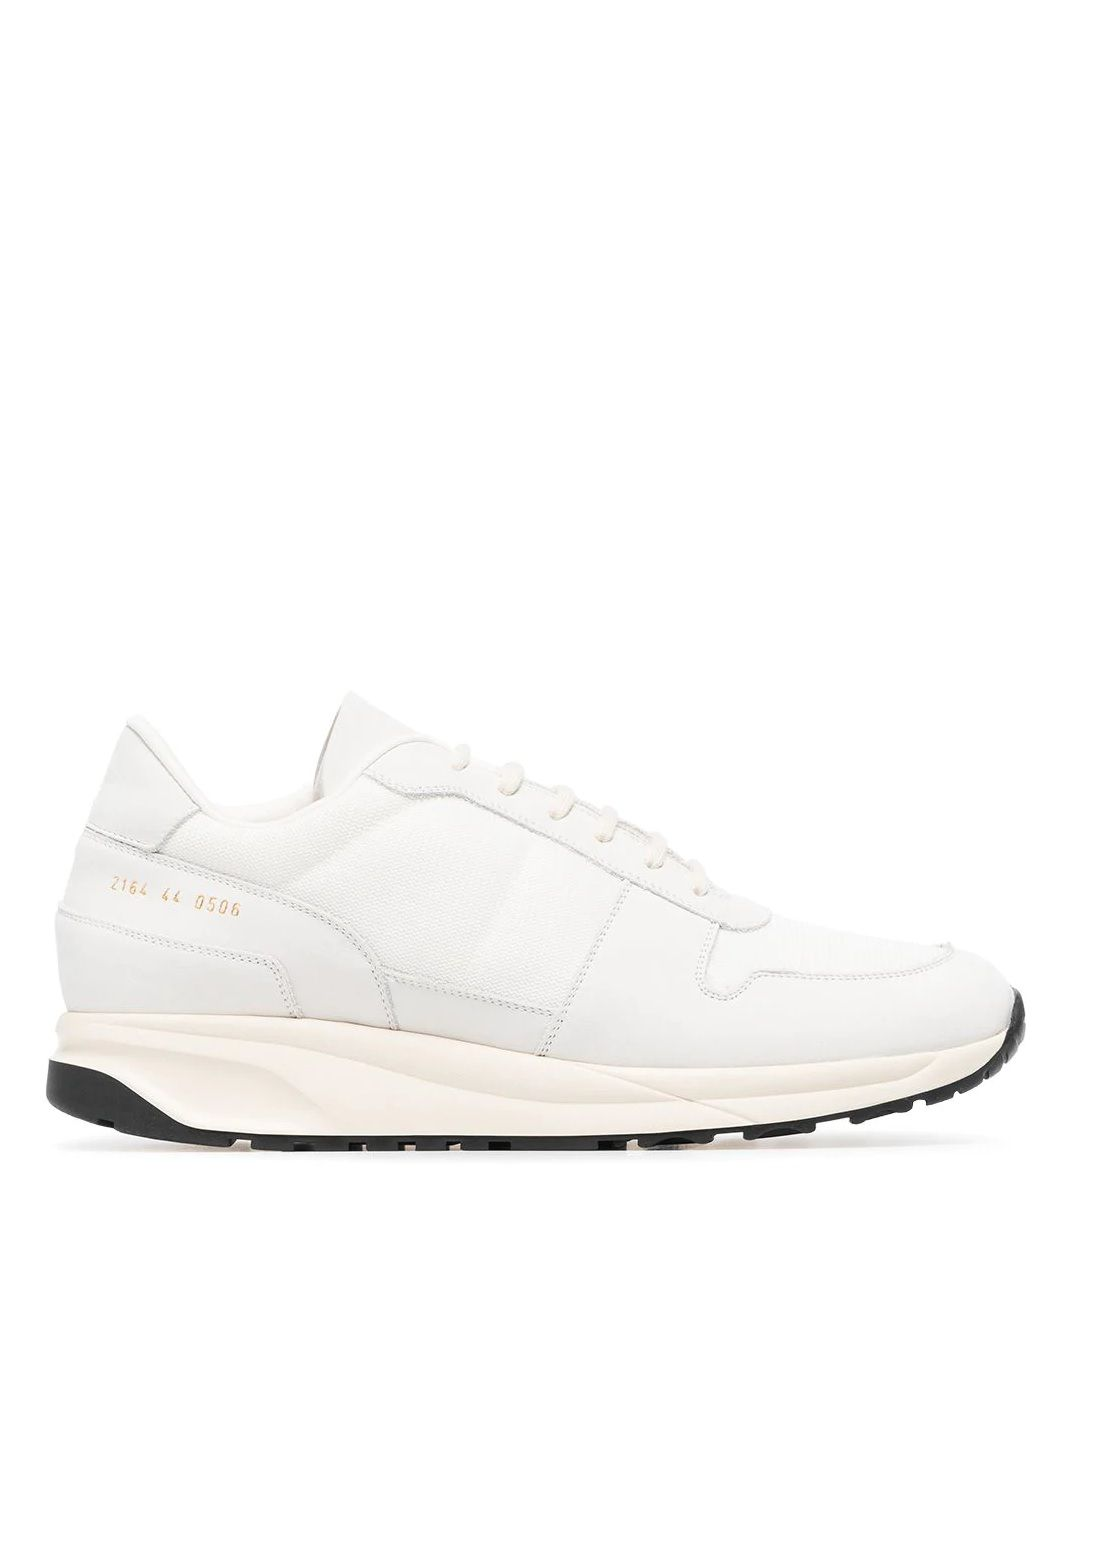 Common Projects Track Vintage Runner